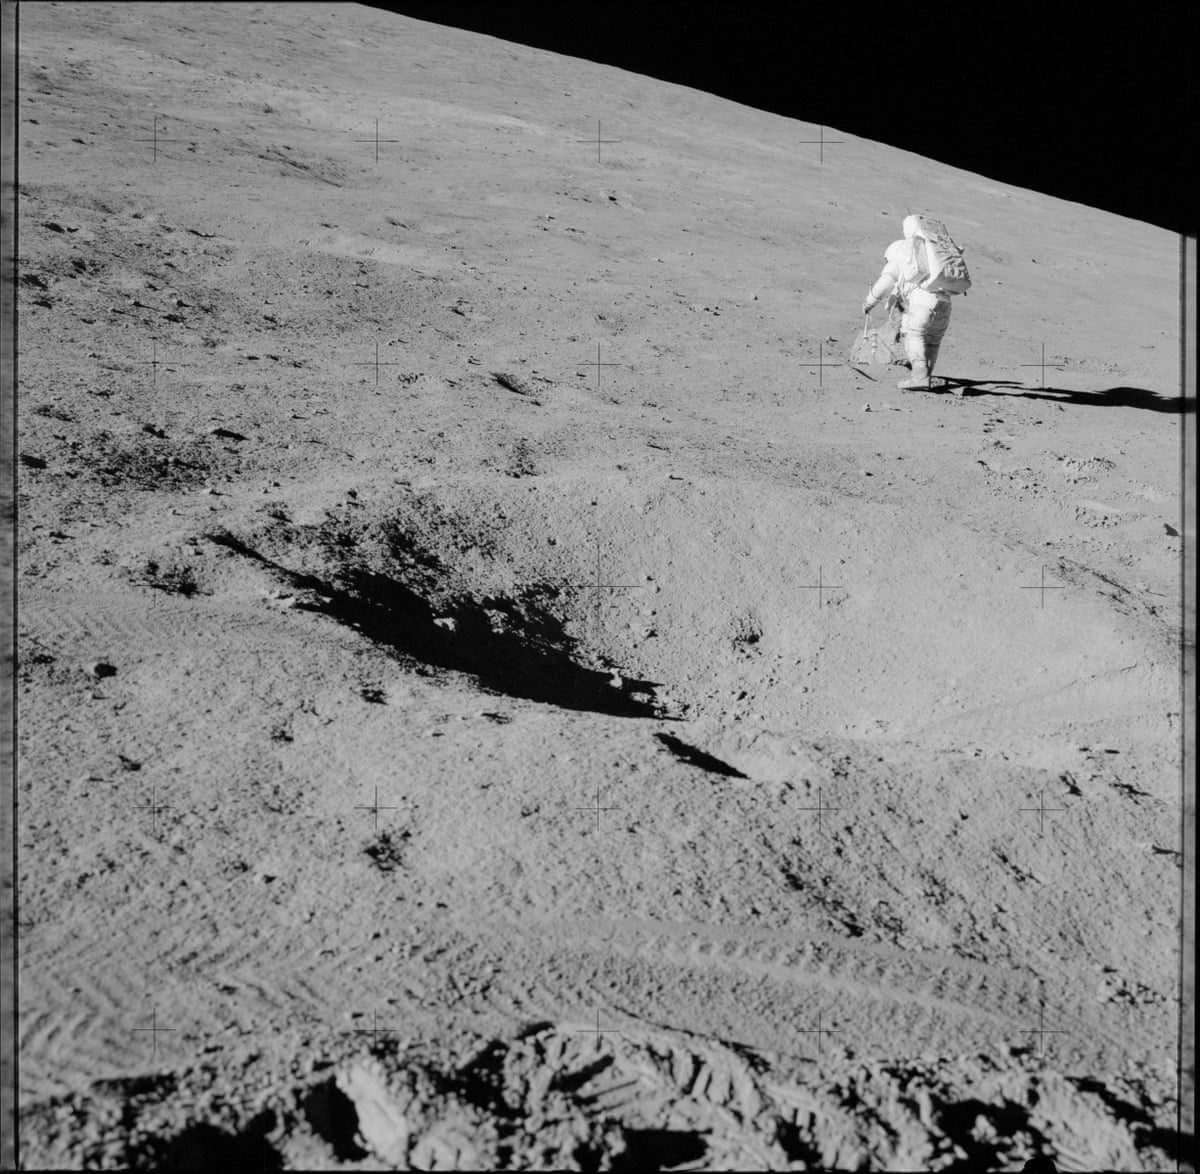 nasa apollo program pictures - photo #41